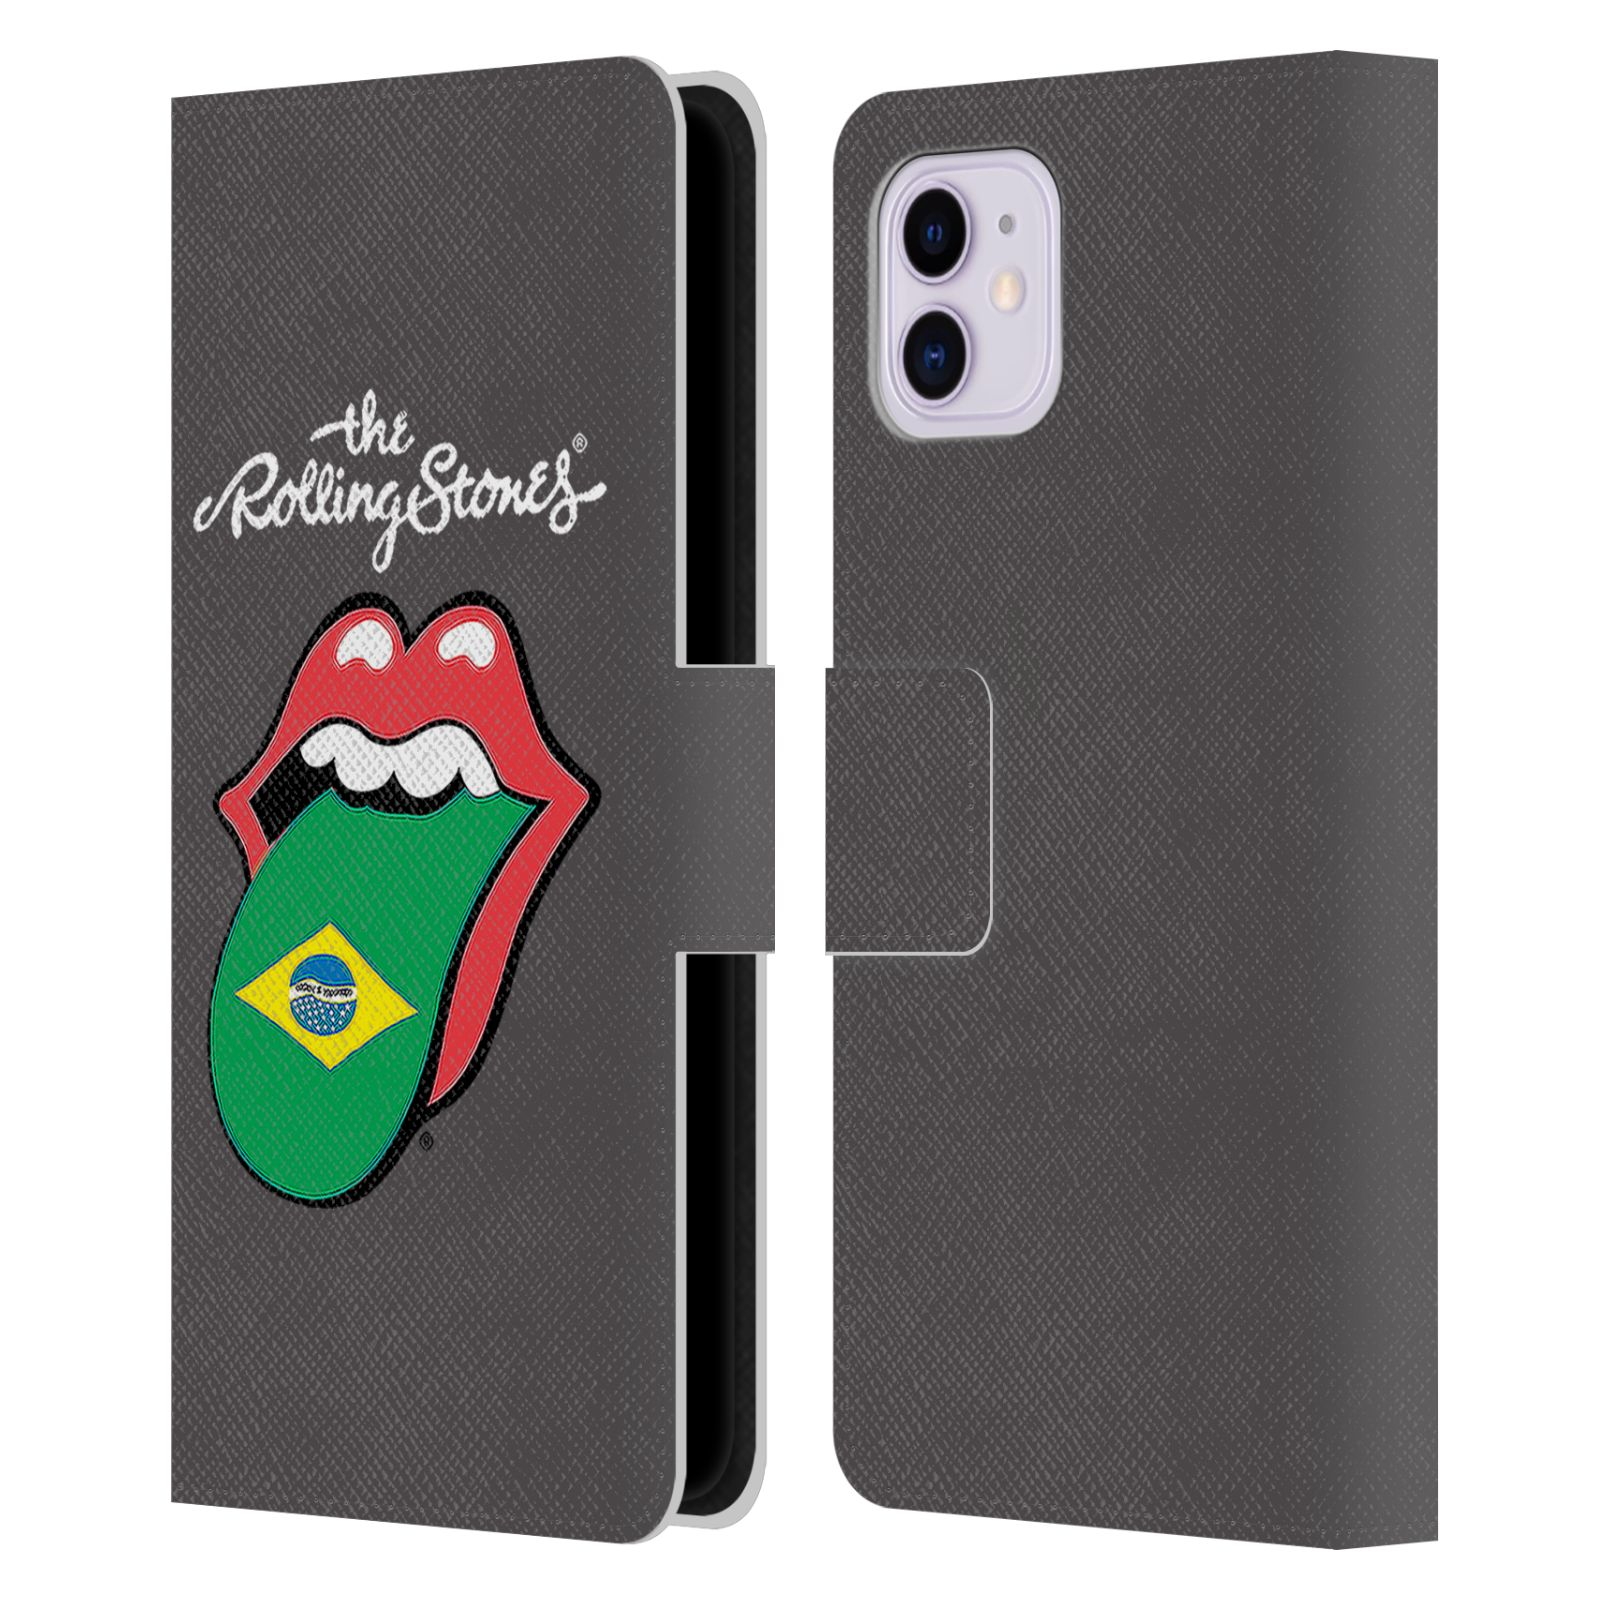 Official The Rolling Stones International Licks 1 Brazil Leather Book Wallet Case For Apple iPhone 11